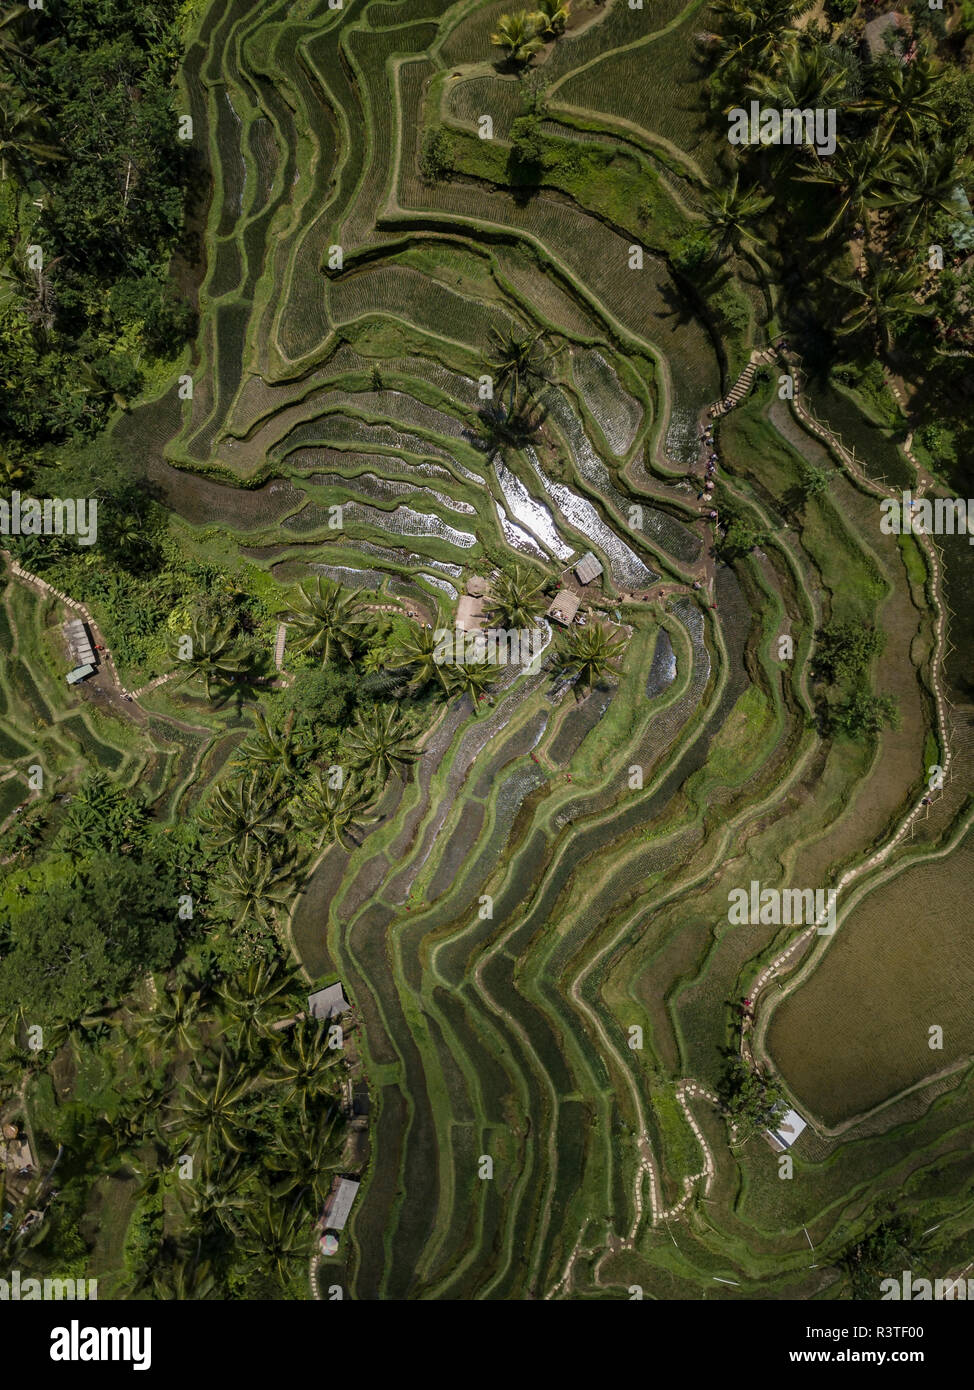 Indonesia, Bali, Ubud, Tegalalang, Aerial view of rice fields, terraced fields - Stock Image